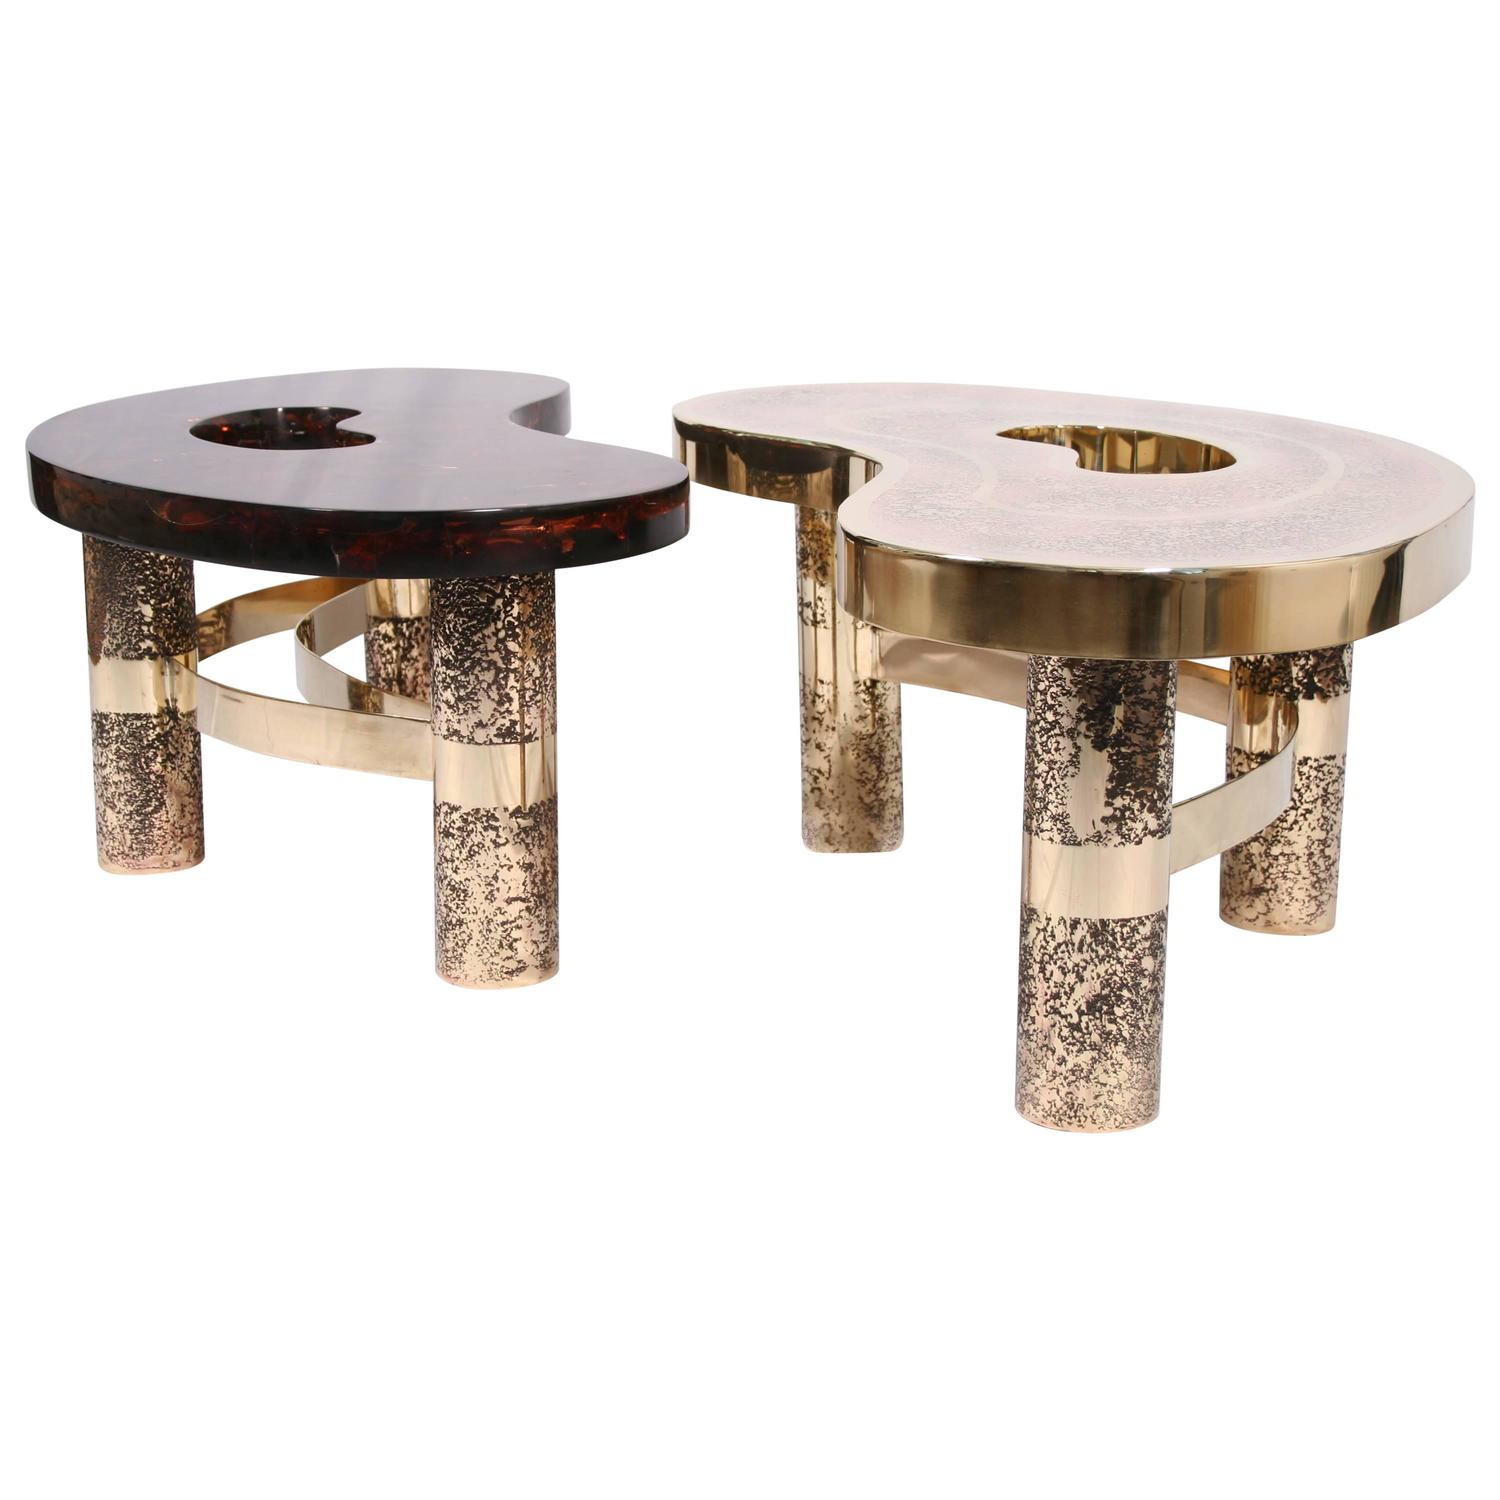 Coffee Table Beann Etched Brass And Fractal Resin Designed By Arriau At 1stdibs